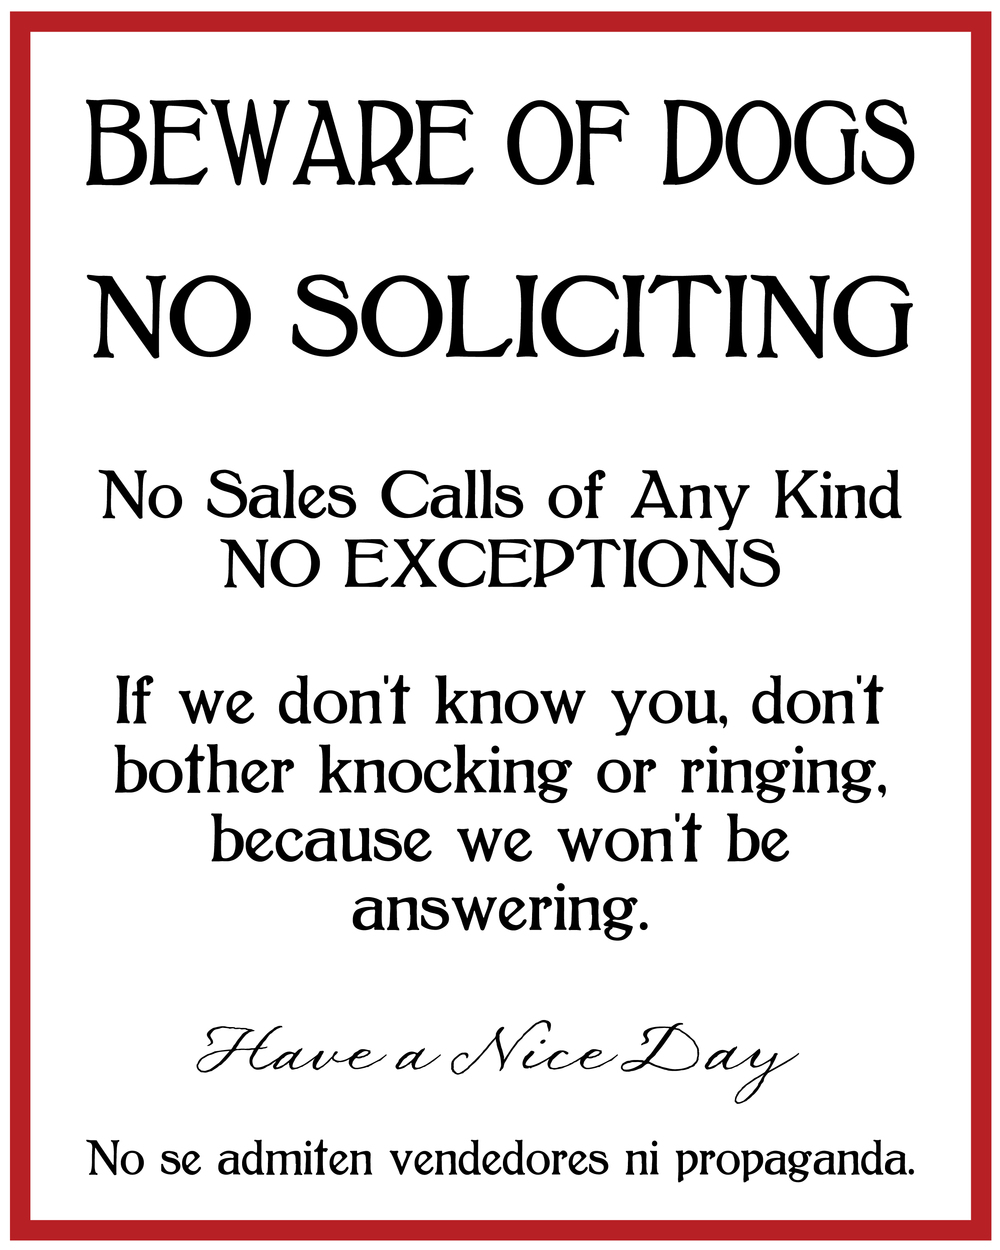 No-Soliciting.jpg